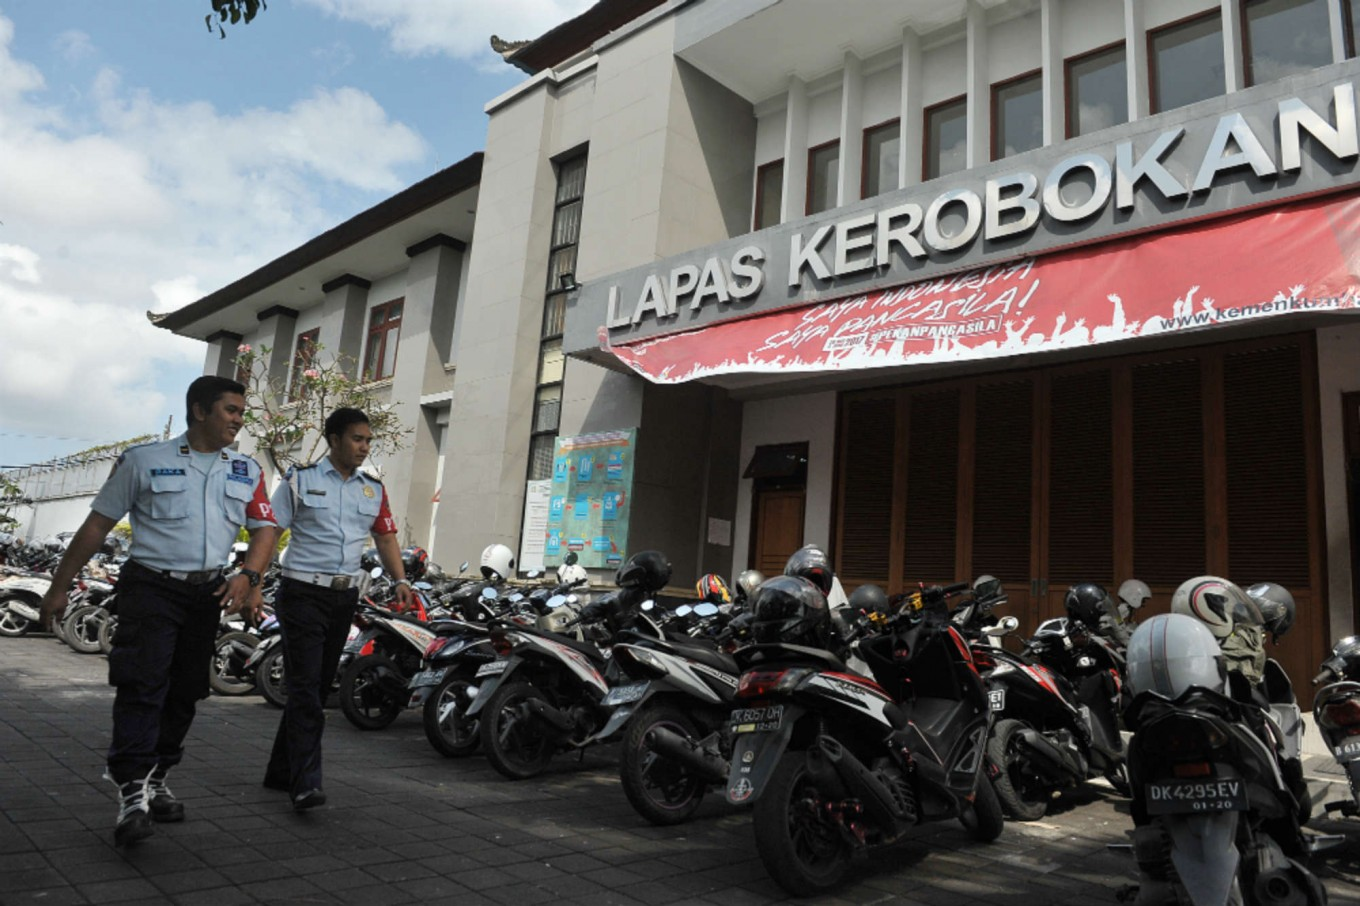 American claims extortion behind Bali jailbreak